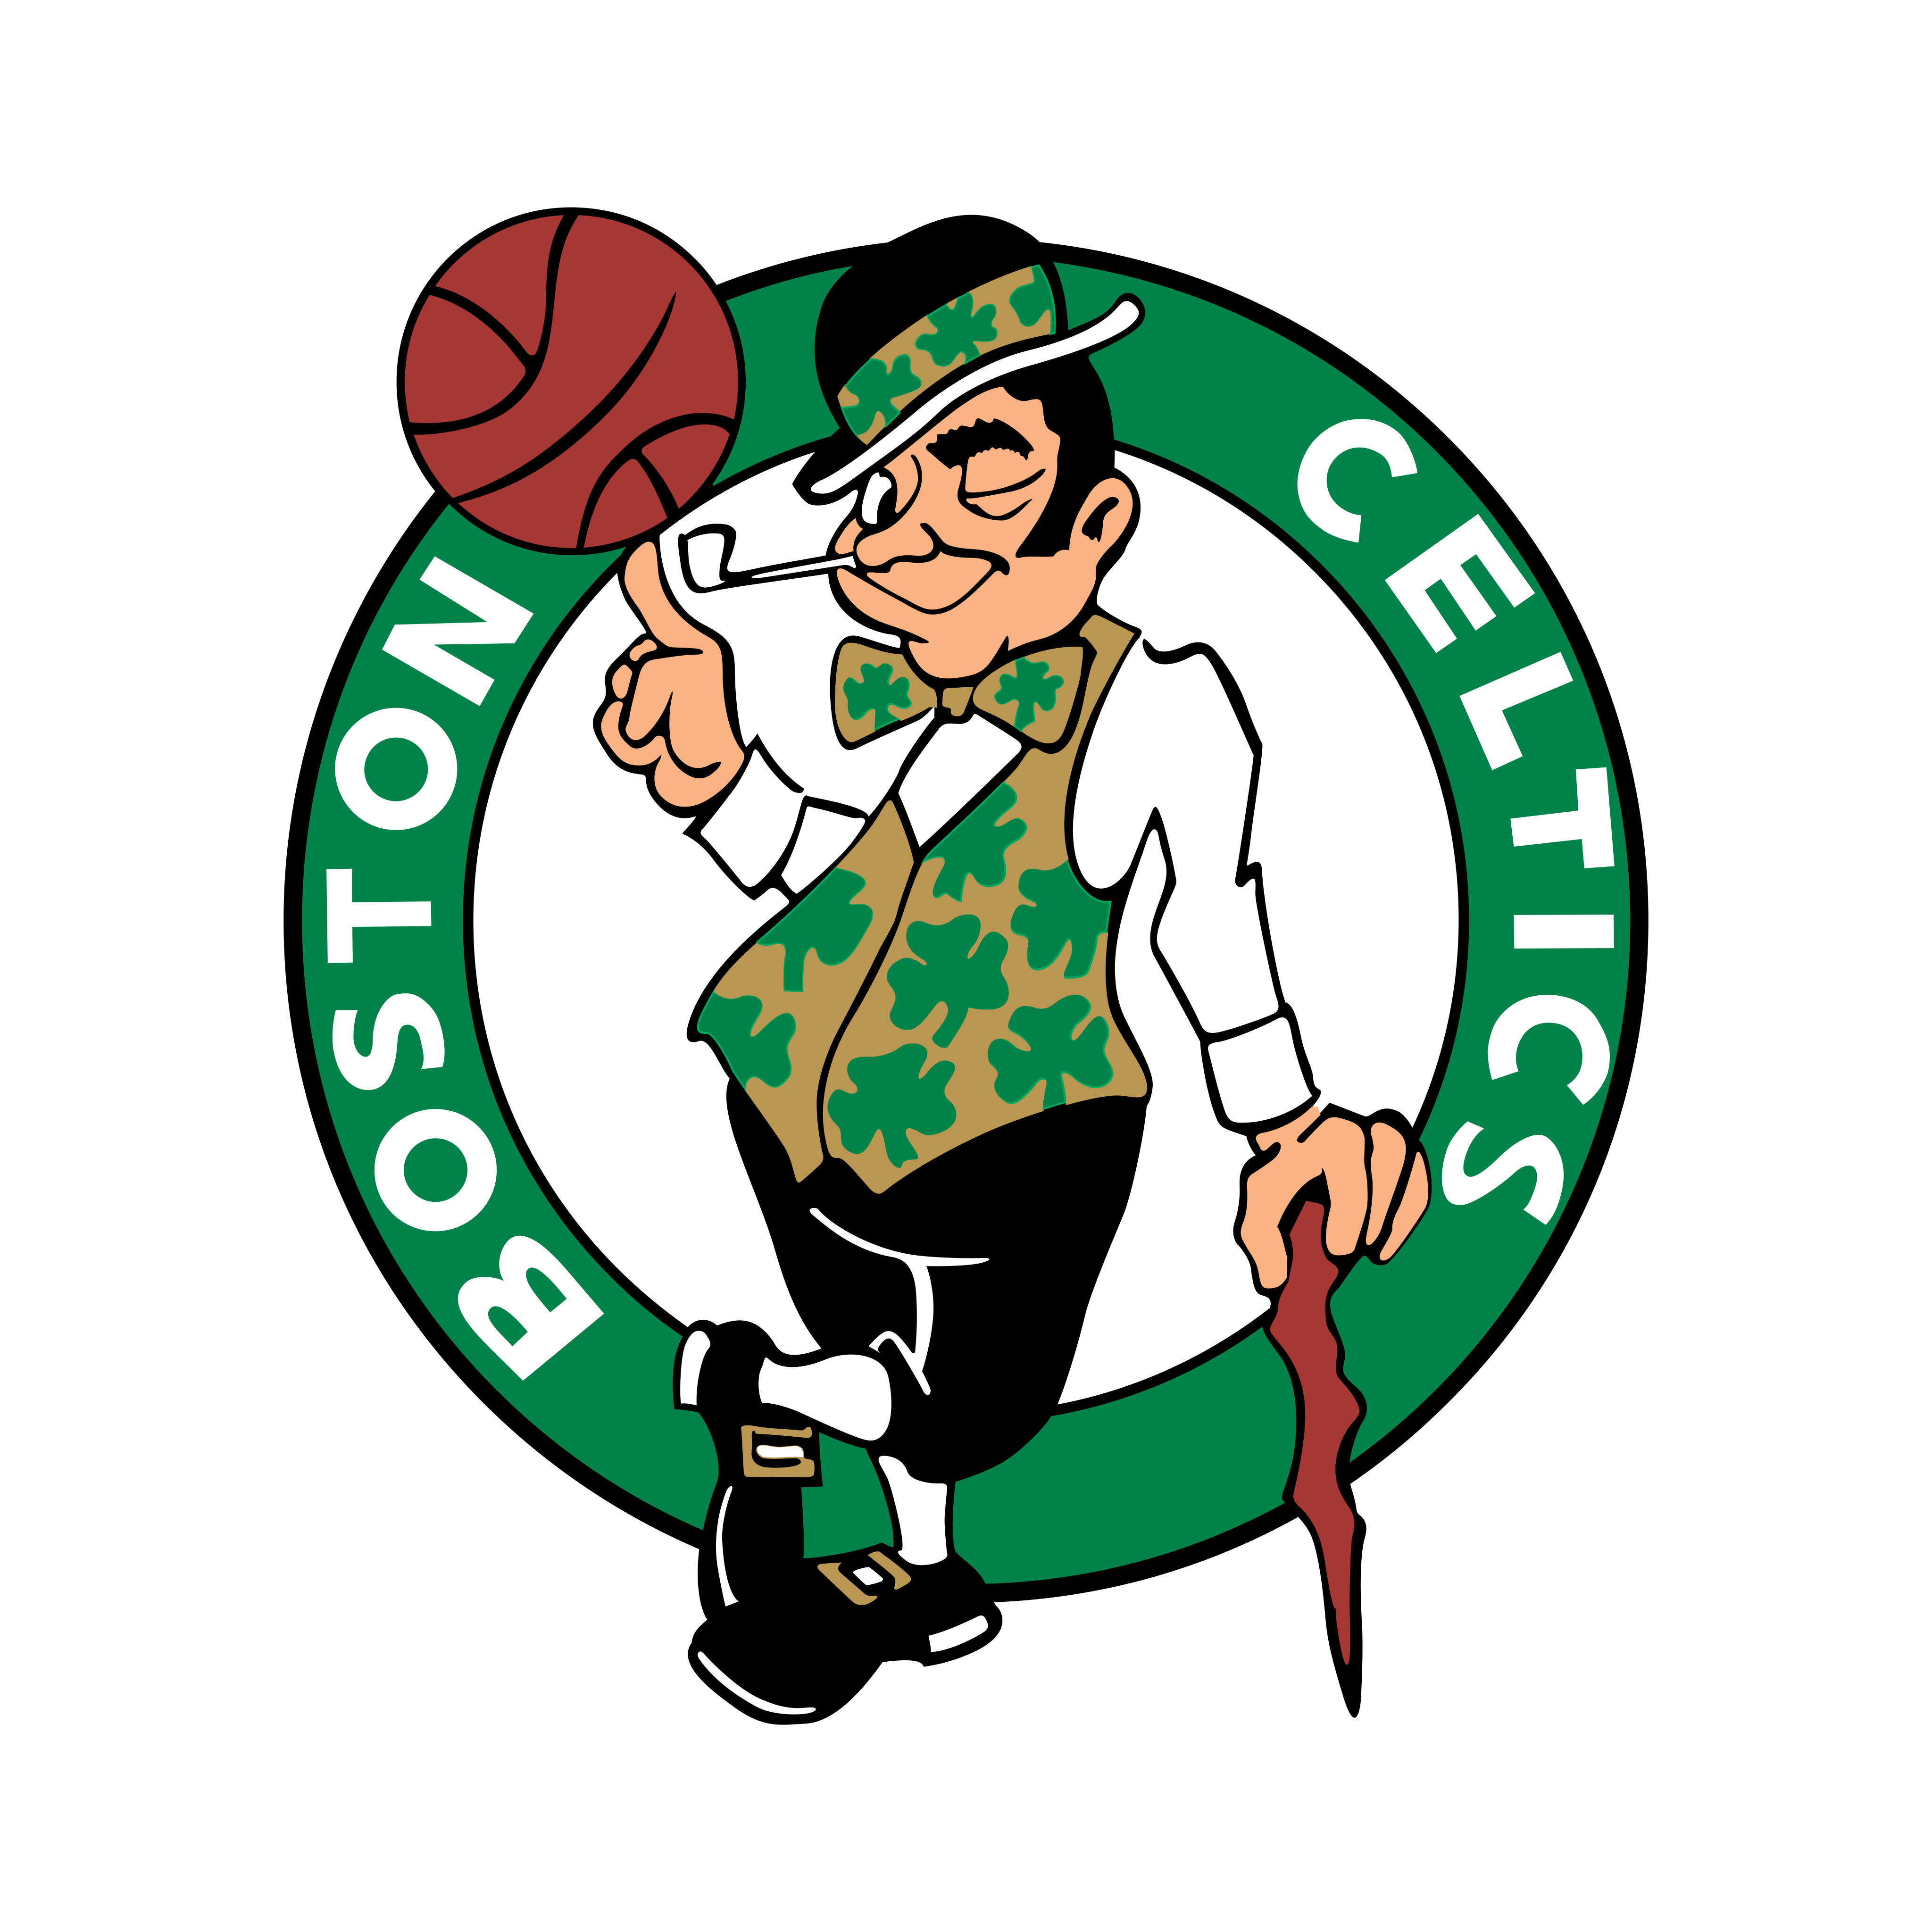 boston celtics logo.